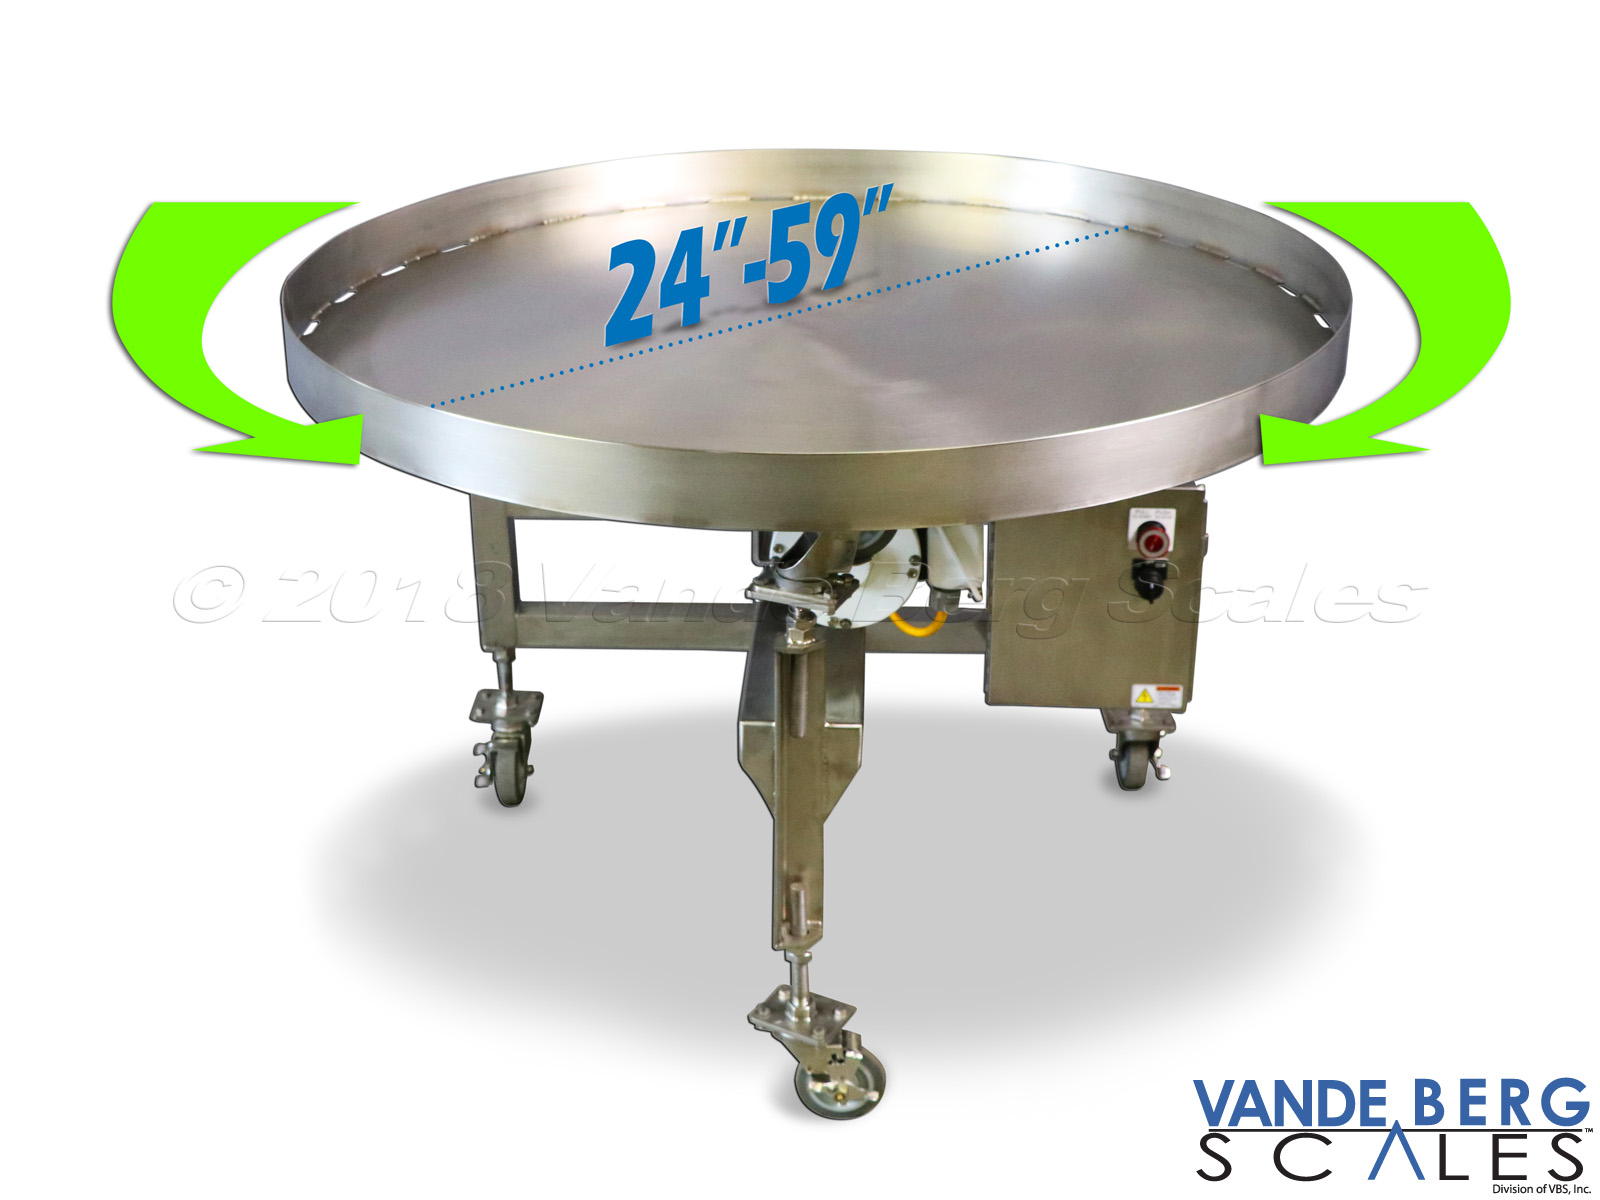 "48"" washdown SS rotary accumulation turntable.  Variable control allows speed adjustment based on personnel preference."